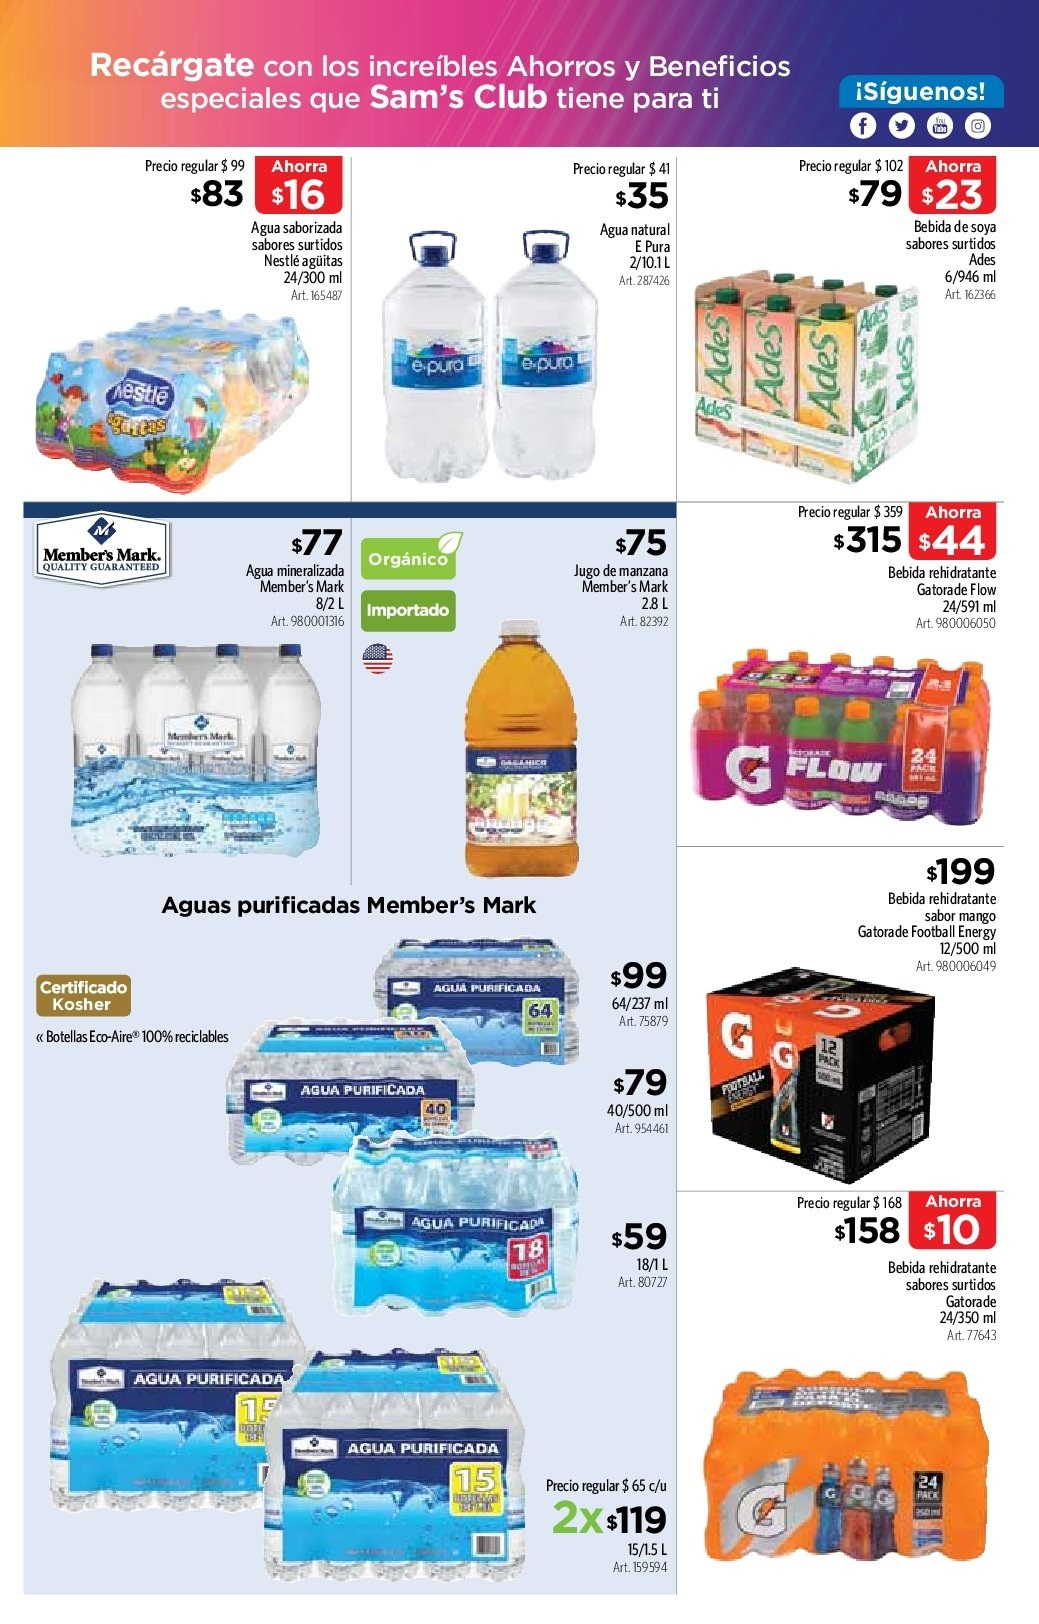 Folleto actual Sam's Club - 8.6.2018 - 26.6.2018 - Ventas - ades, agua natural, bebida, manzanas, mark, nestlé. Página 25.